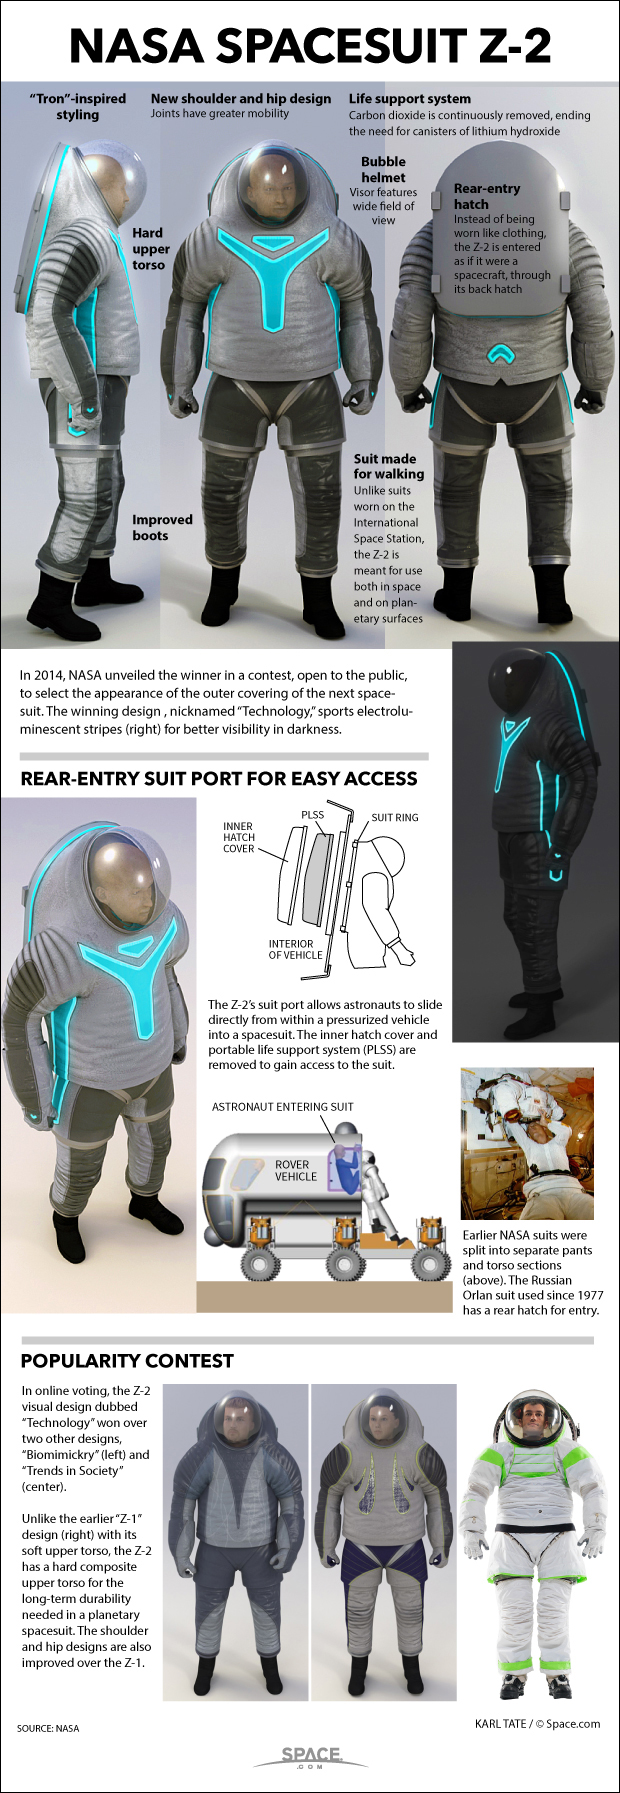 Diagrams of NASA's new Z-2 spacesuit design.